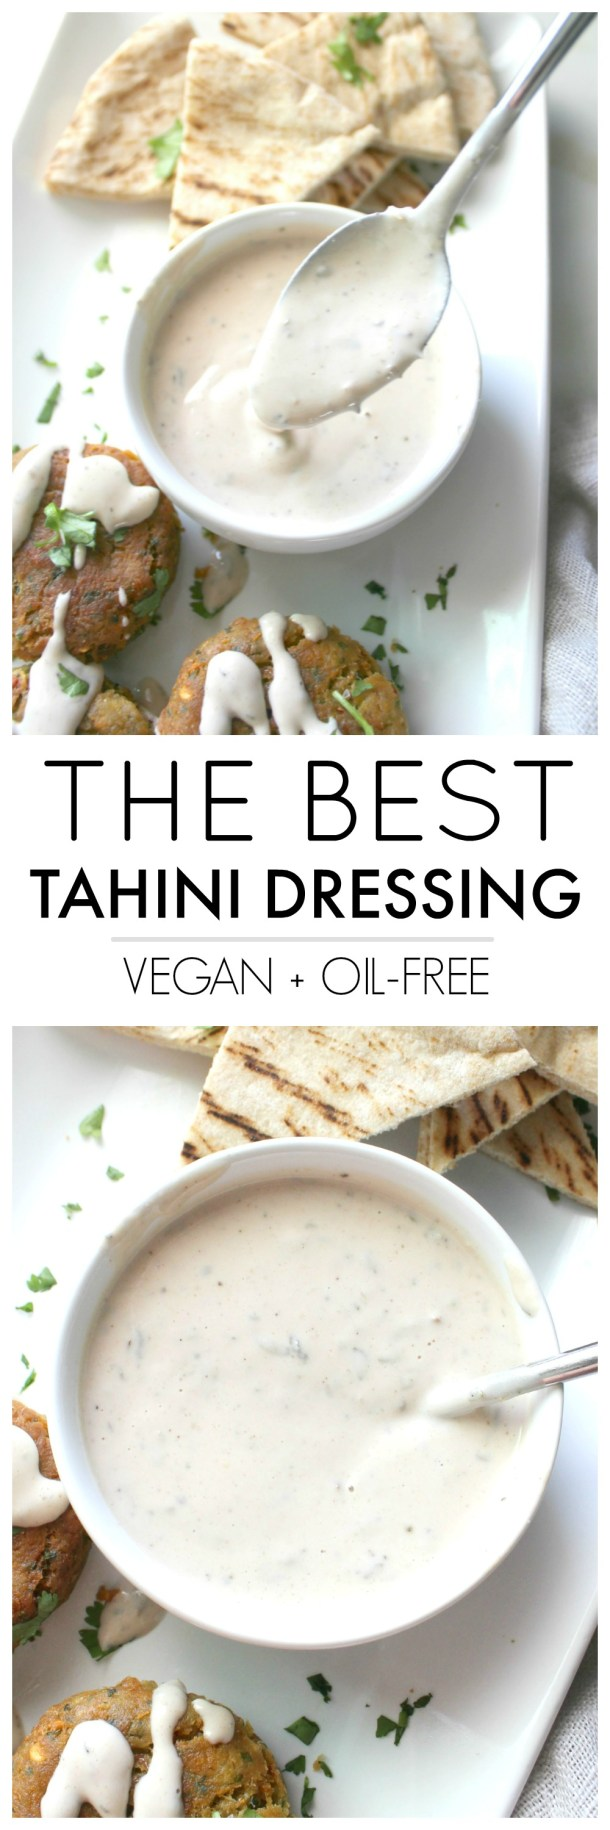 With just 6 ingredients and 60 seconds, you will have The Best Tahini Dressing ready to go. Serve this over salads, buddha bowls or roasted potatoes. 100% vegan and no blending required | ThisSavoryVegan.com #vegan #thissavoryvegan #healthyrecipes